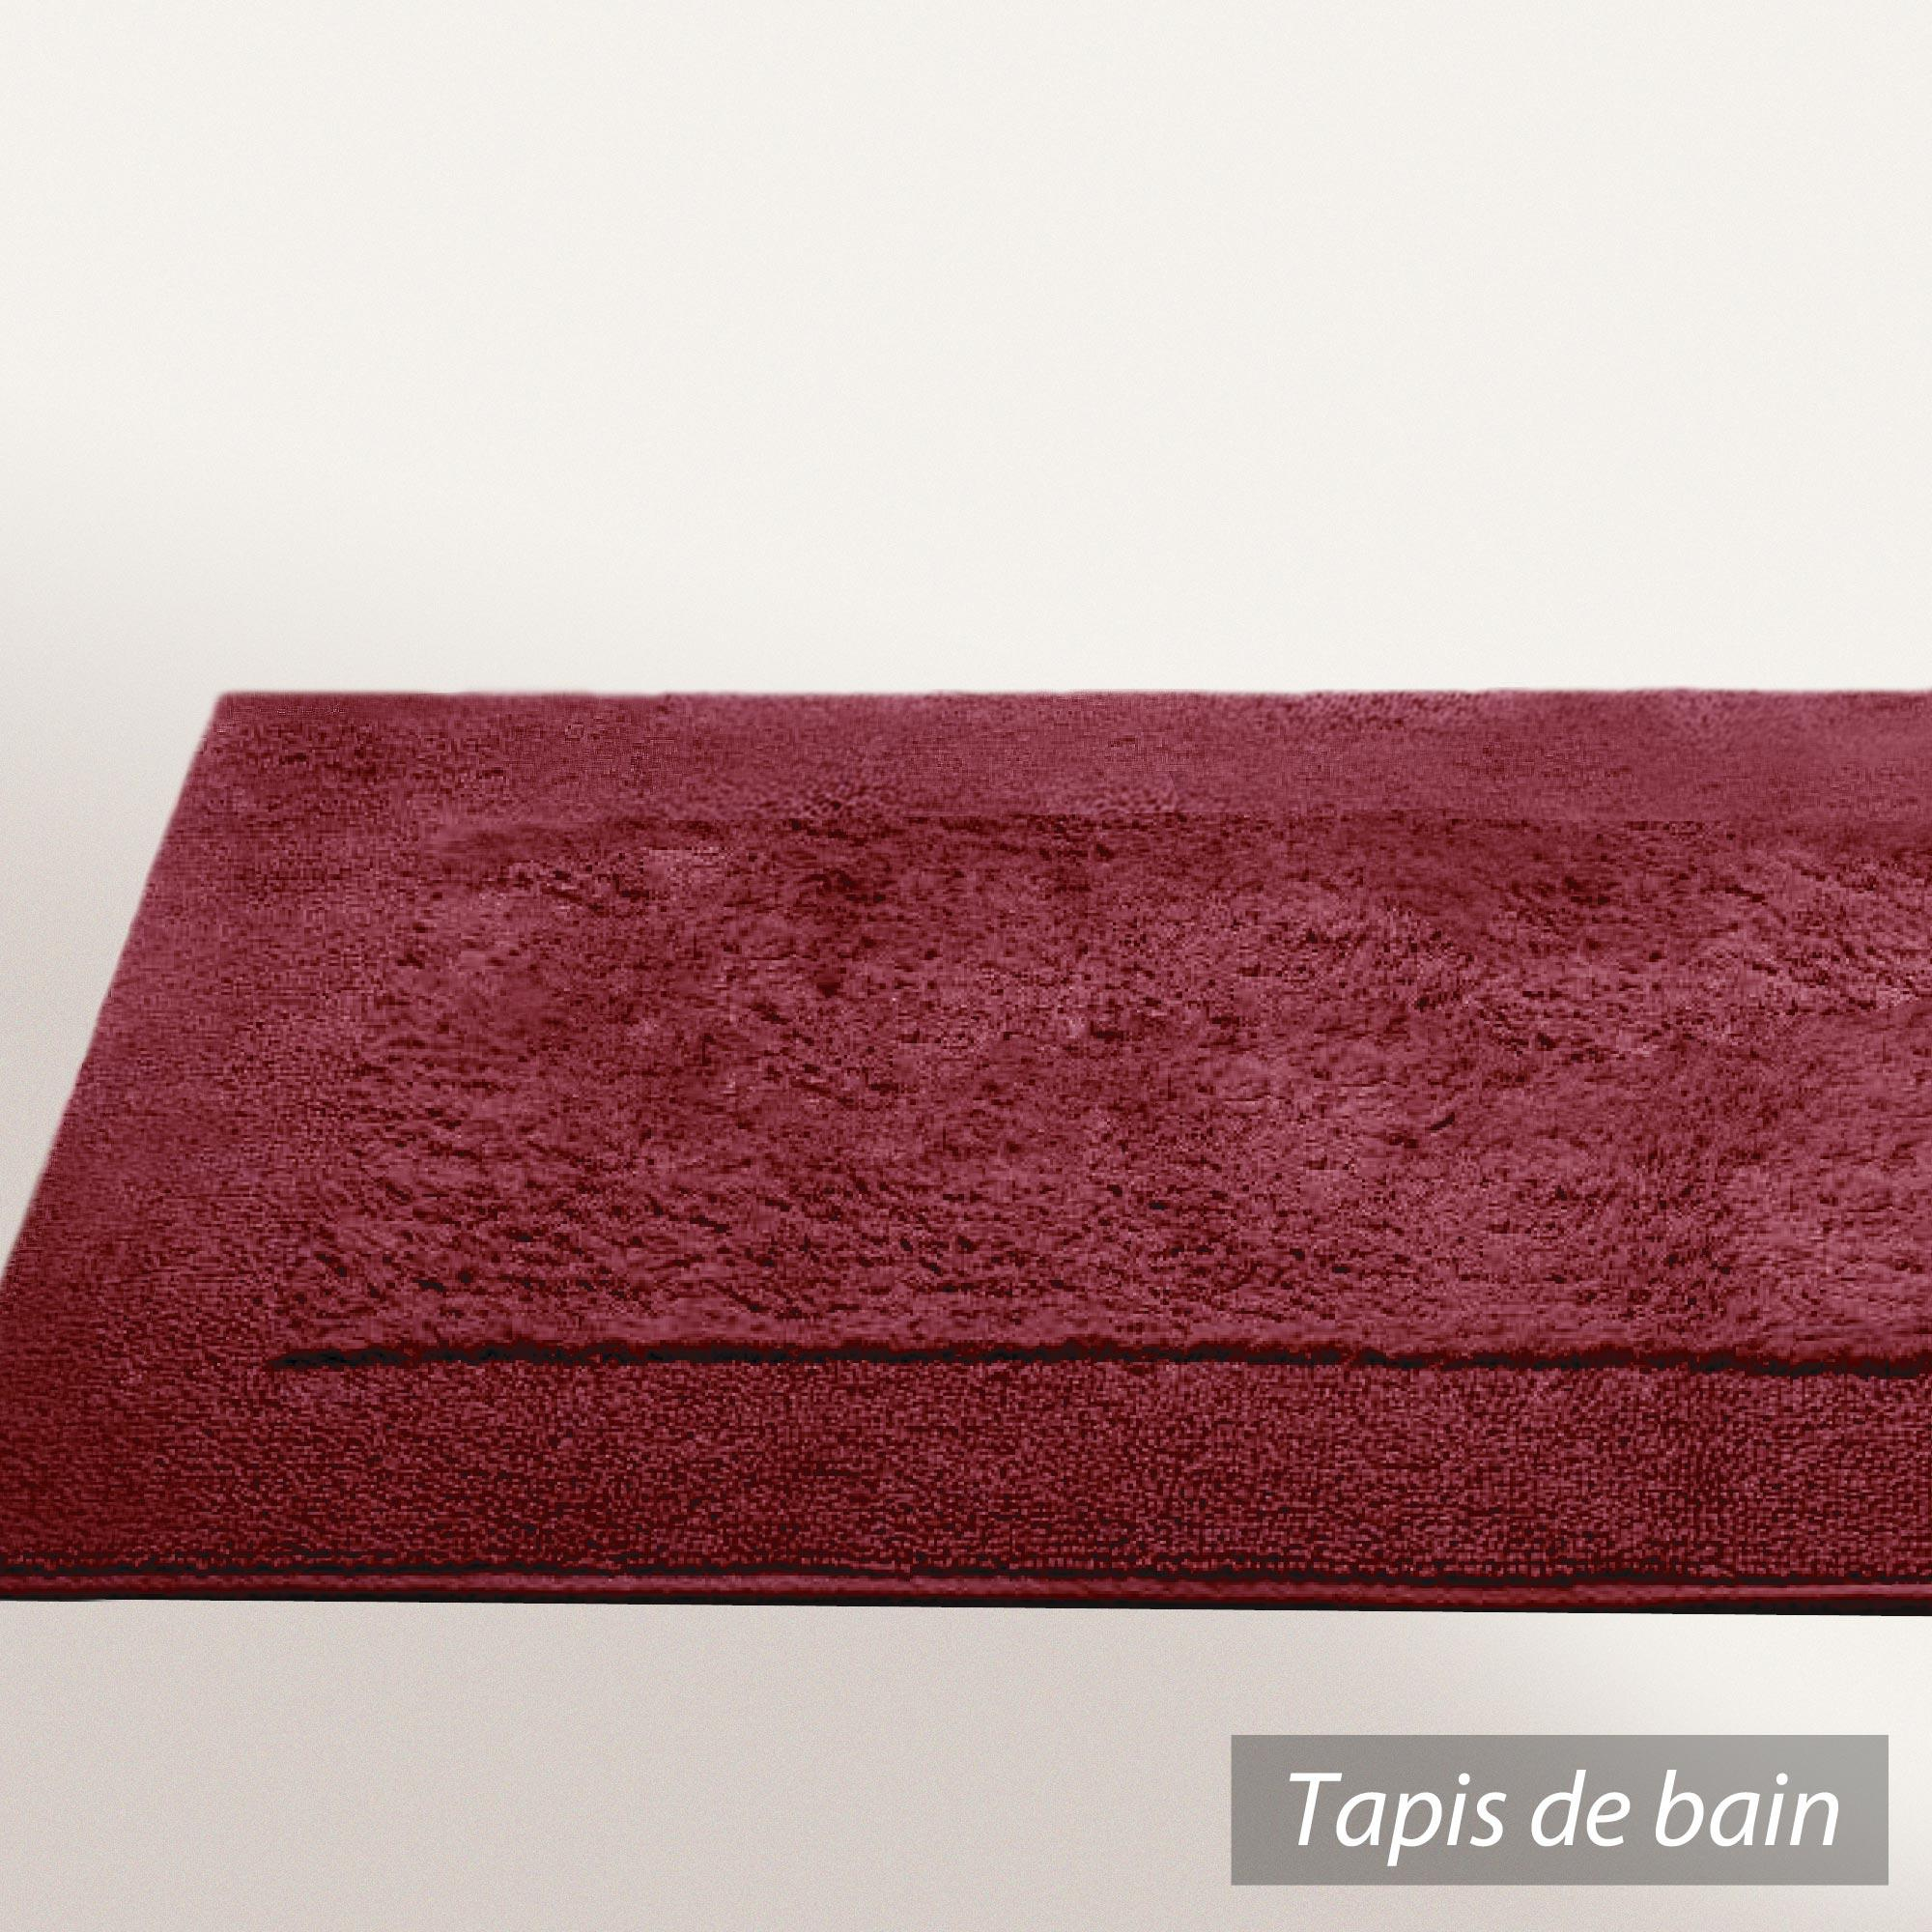 tapis de bain 70x120cm coton uni dream rouge bordeaux linnea vente de linge de maison. Black Bedroom Furniture Sets. Home Design Ideas